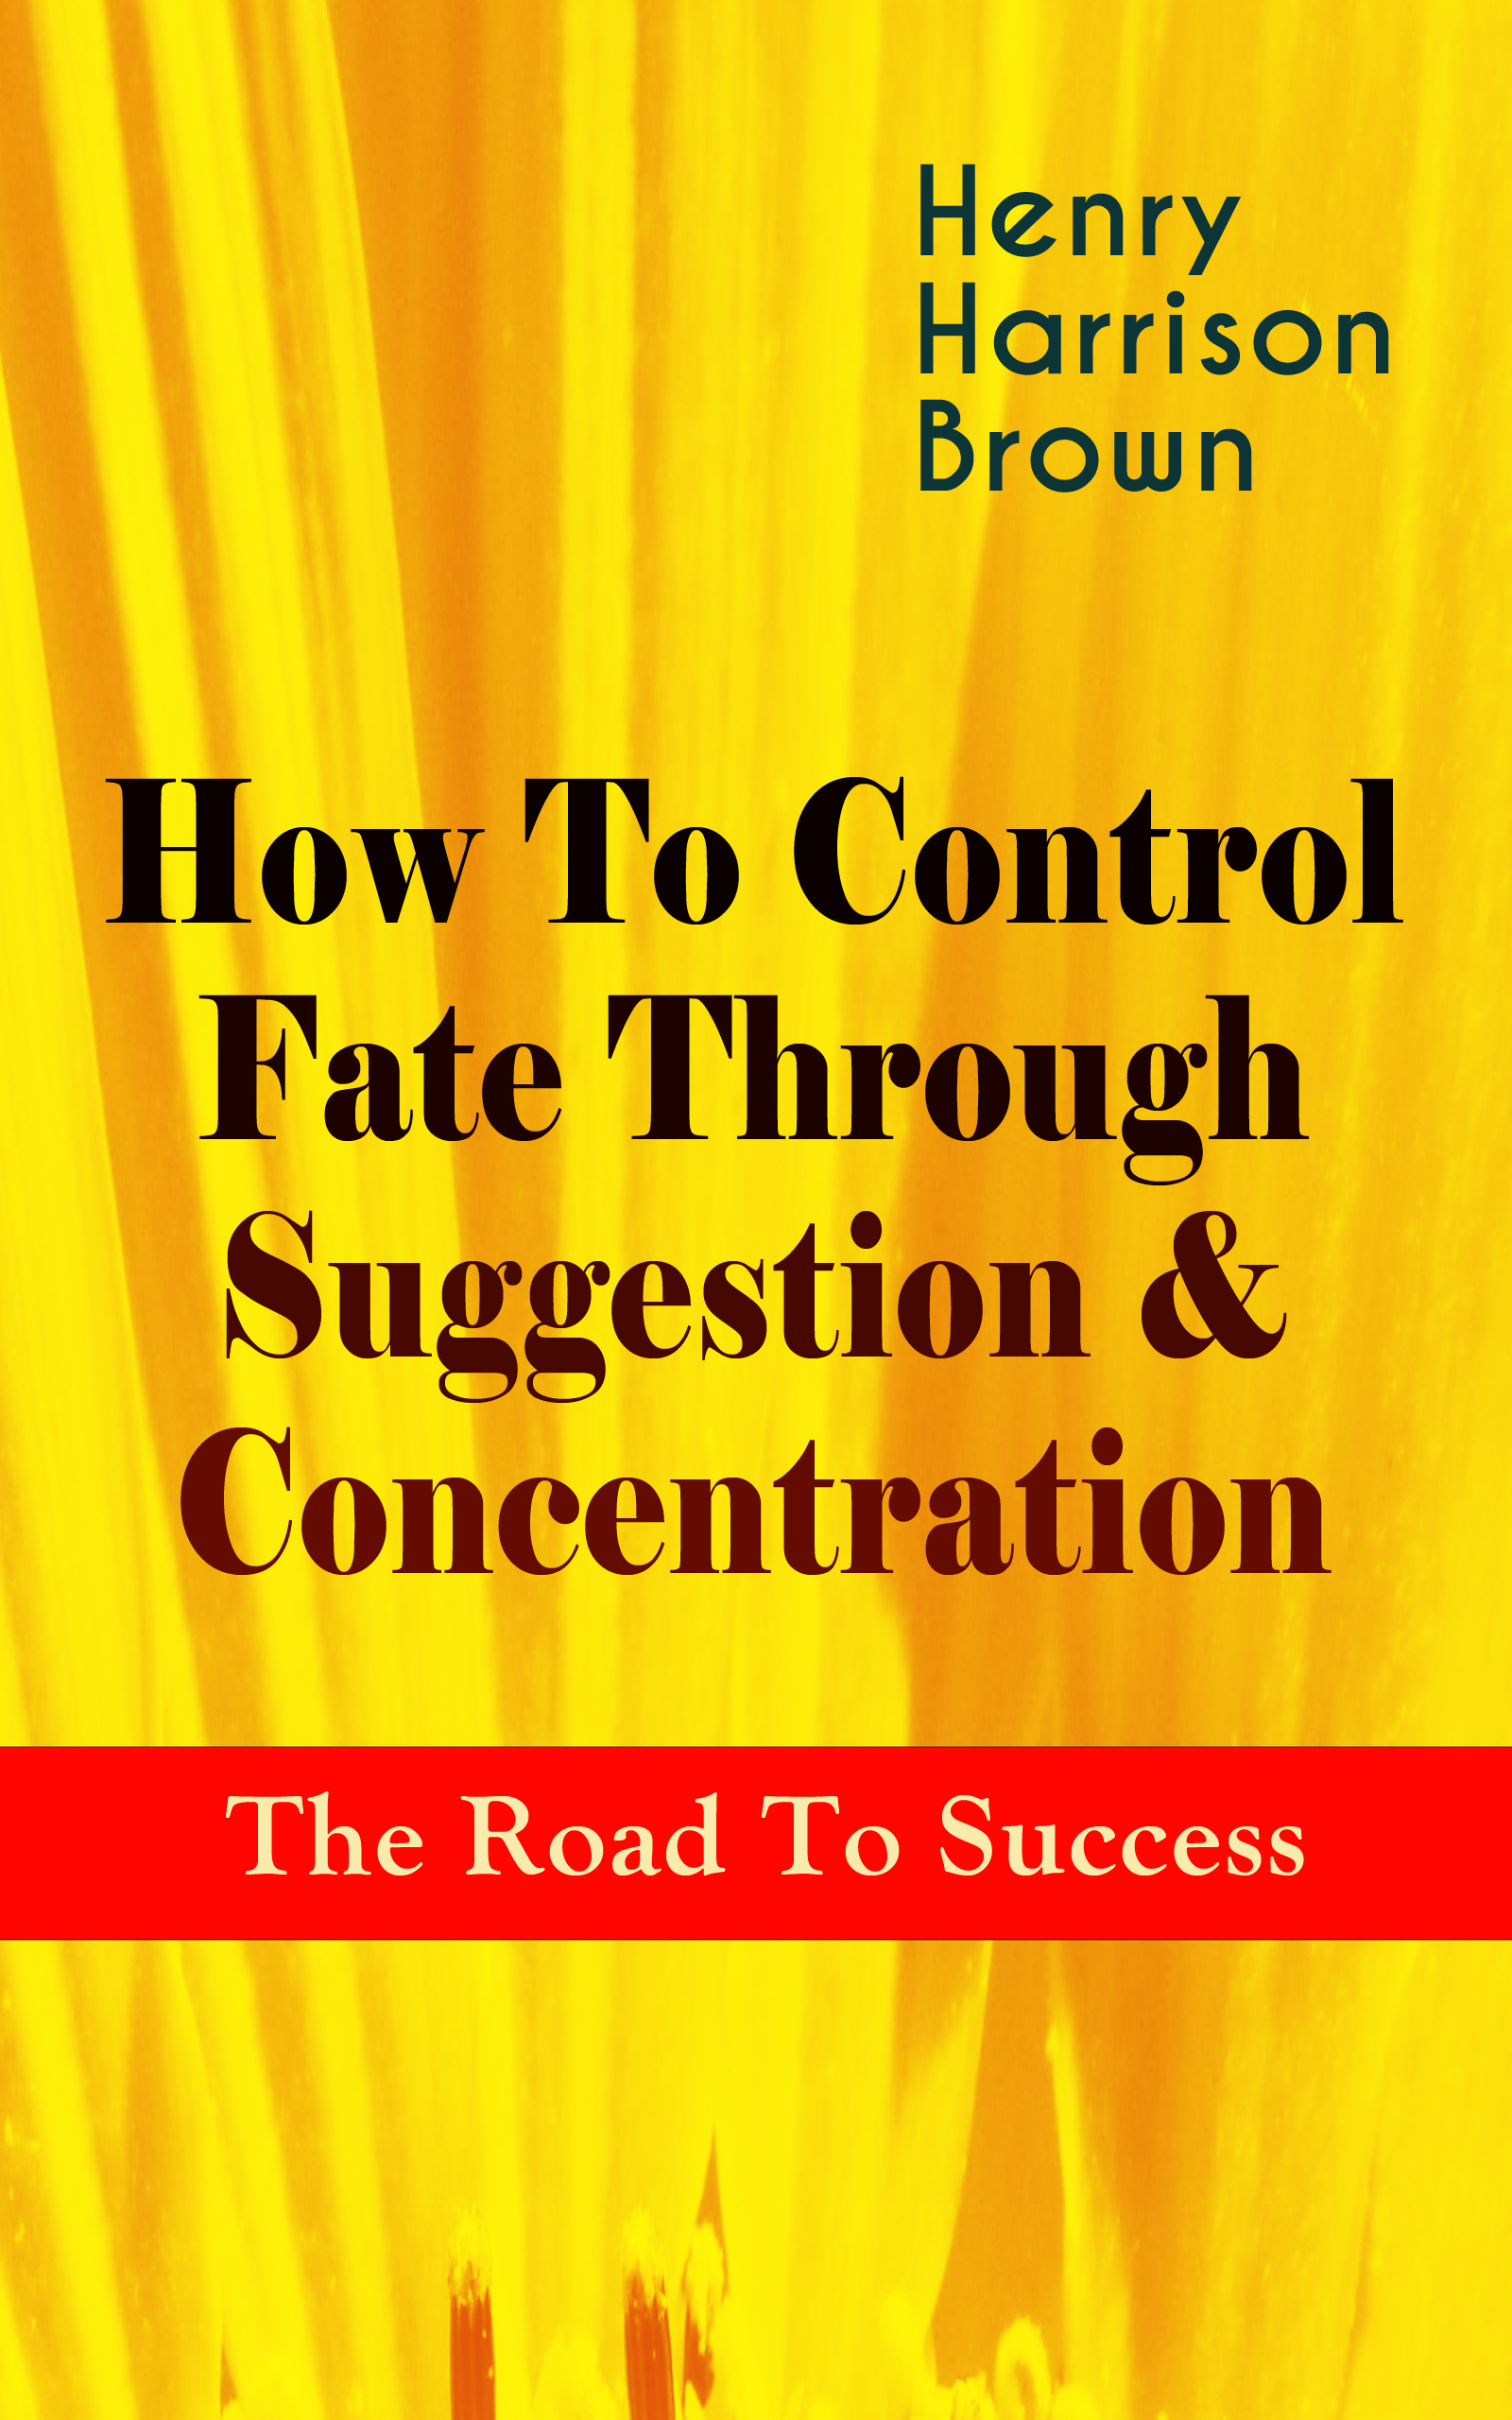 Henry Harrison Brown How To Control Fate Through Suggestion & Concentration: The Road To Success wheatley henry benjamin how to make an index